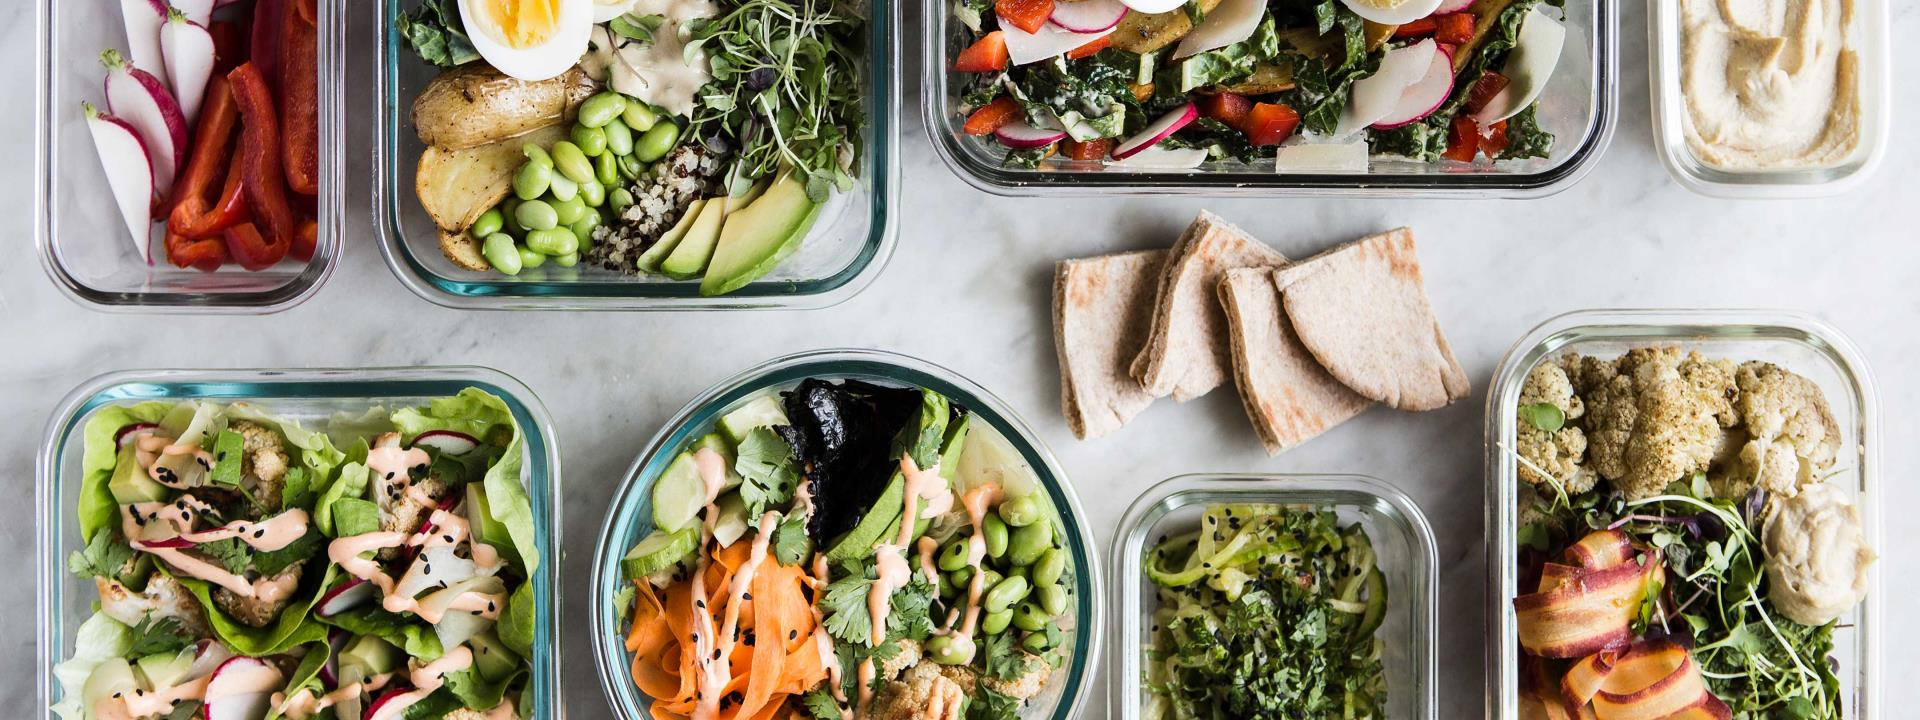 Healthy meal prep for fit bodies vegetarian furthermore healthy meal prep for fit bodies vegetarian forumfinder Choice Image